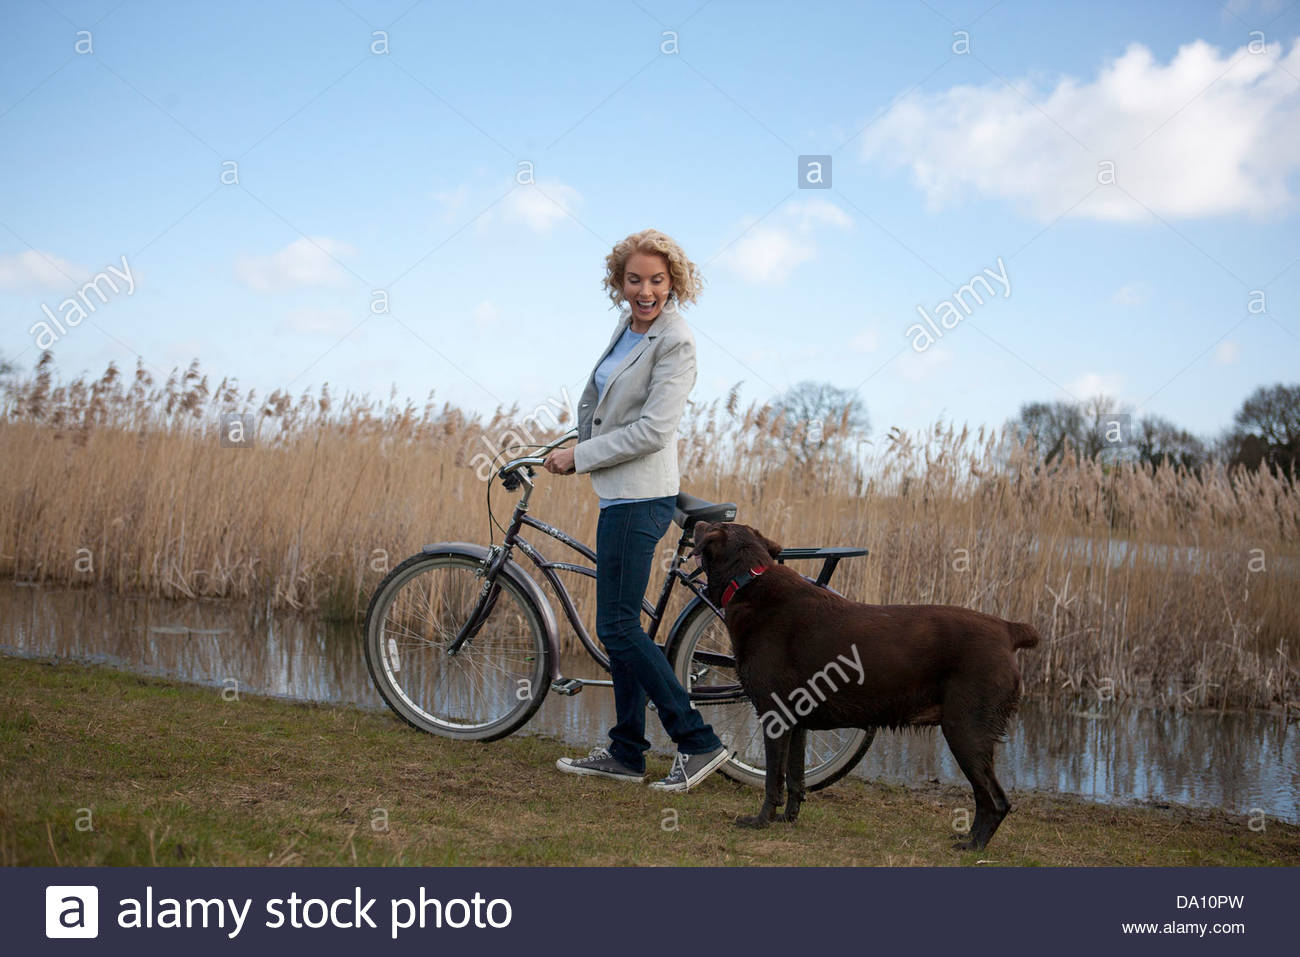 A mature woman pushing a bicycle next to a lake with her dog - Stock Image